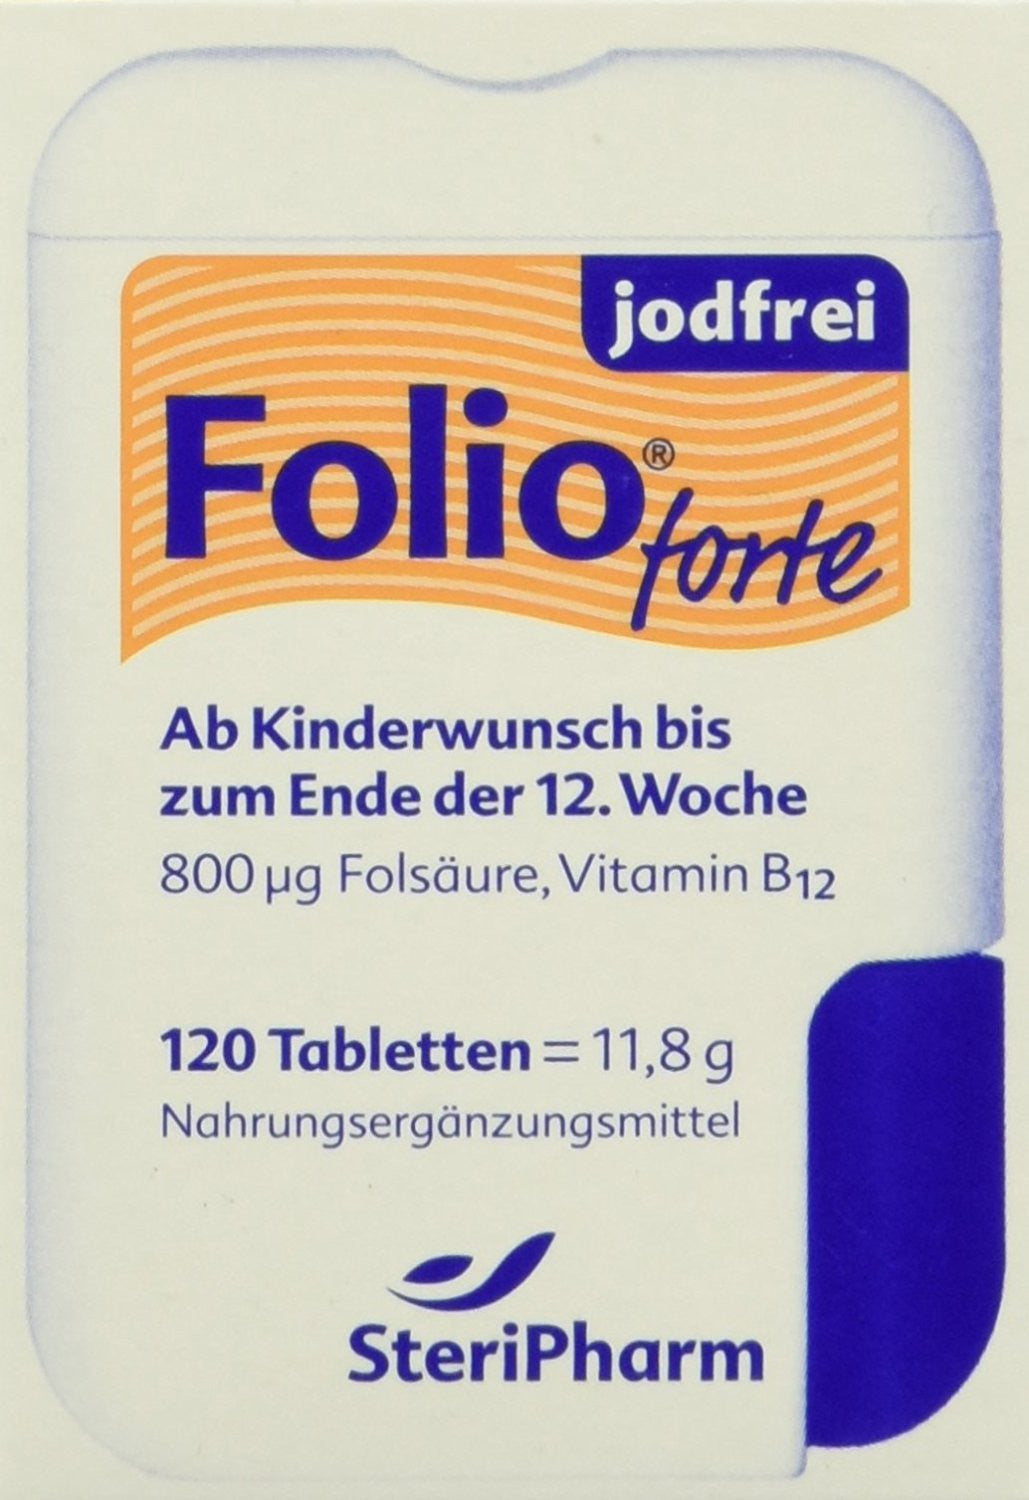 Folio forte iodine-free film-coated 120 tablets, 11,8g